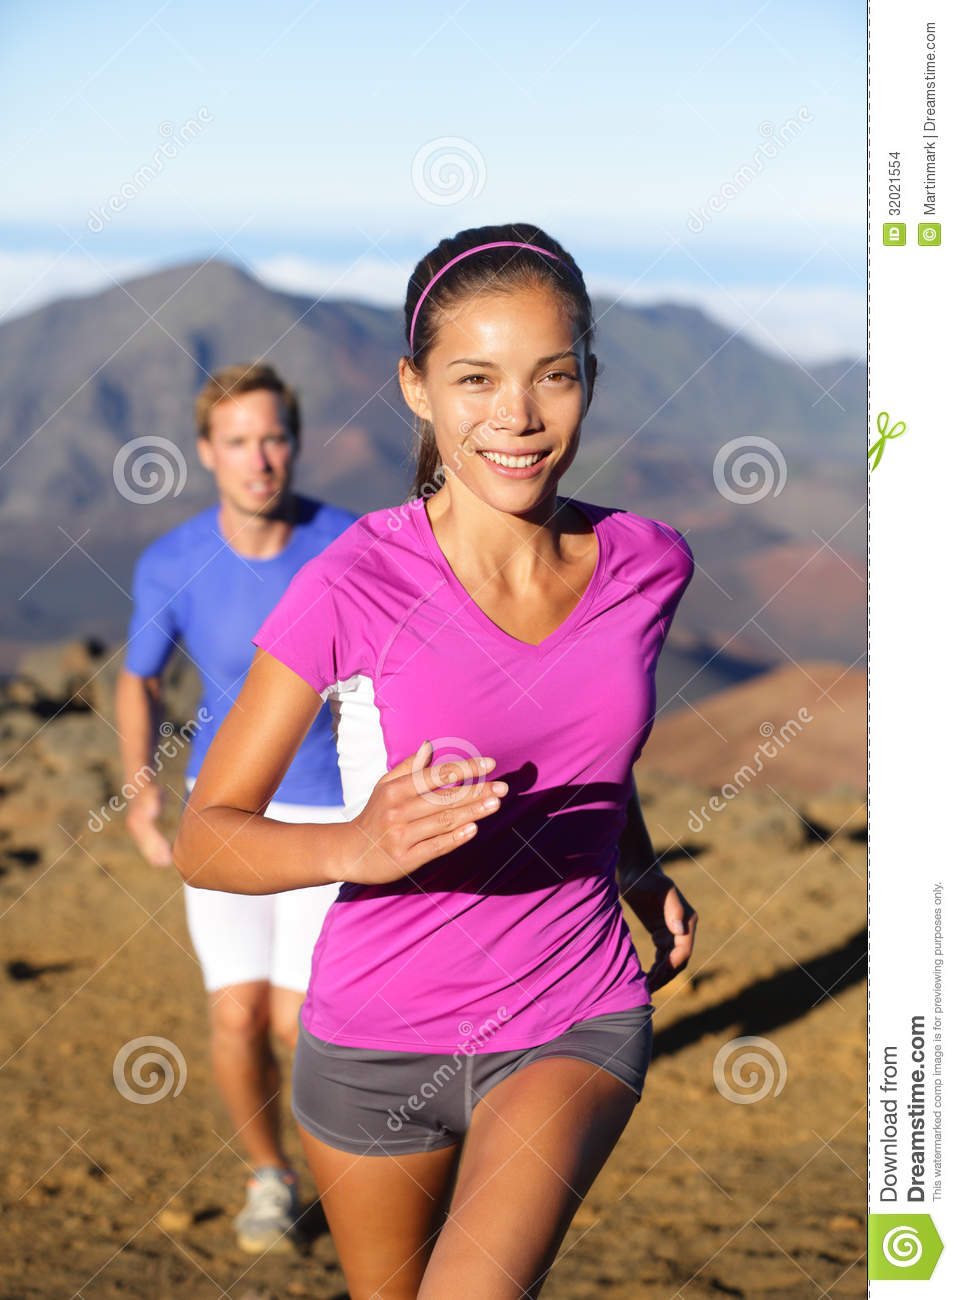 trail-running-woman-runner-healthy-lifestyle-women-concept-runners